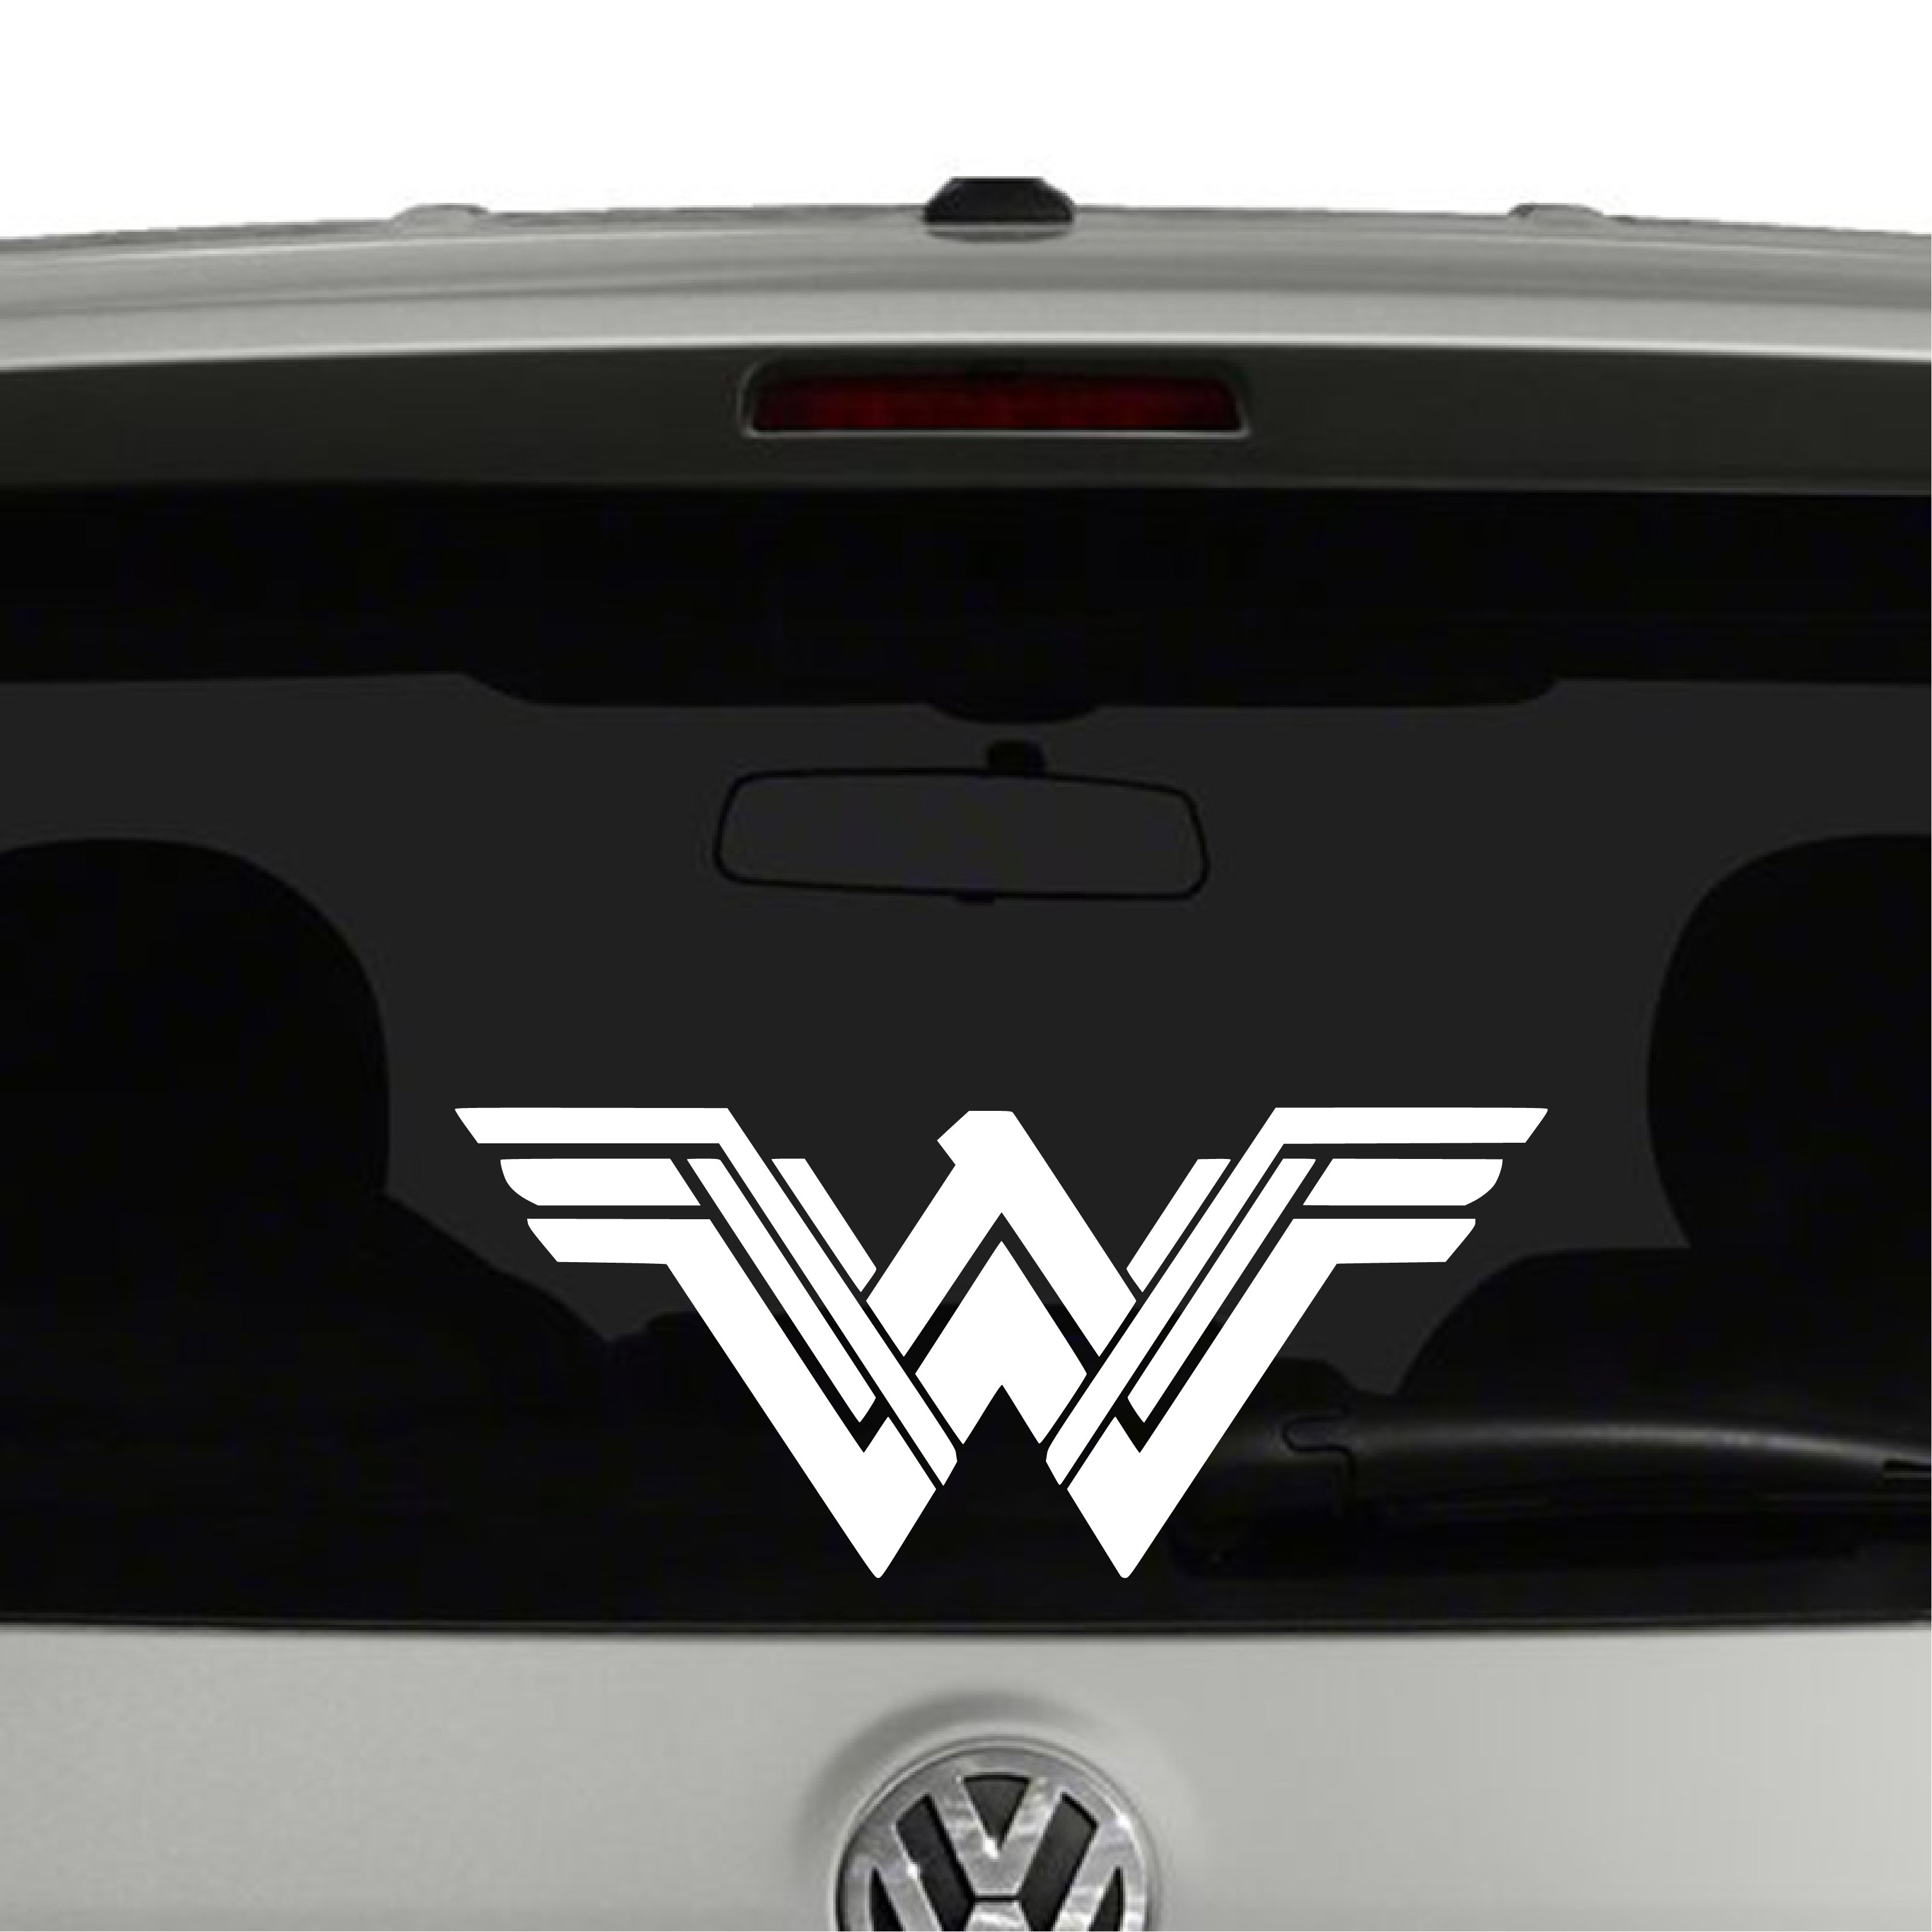 Vinyl Decal Stickers For Cars